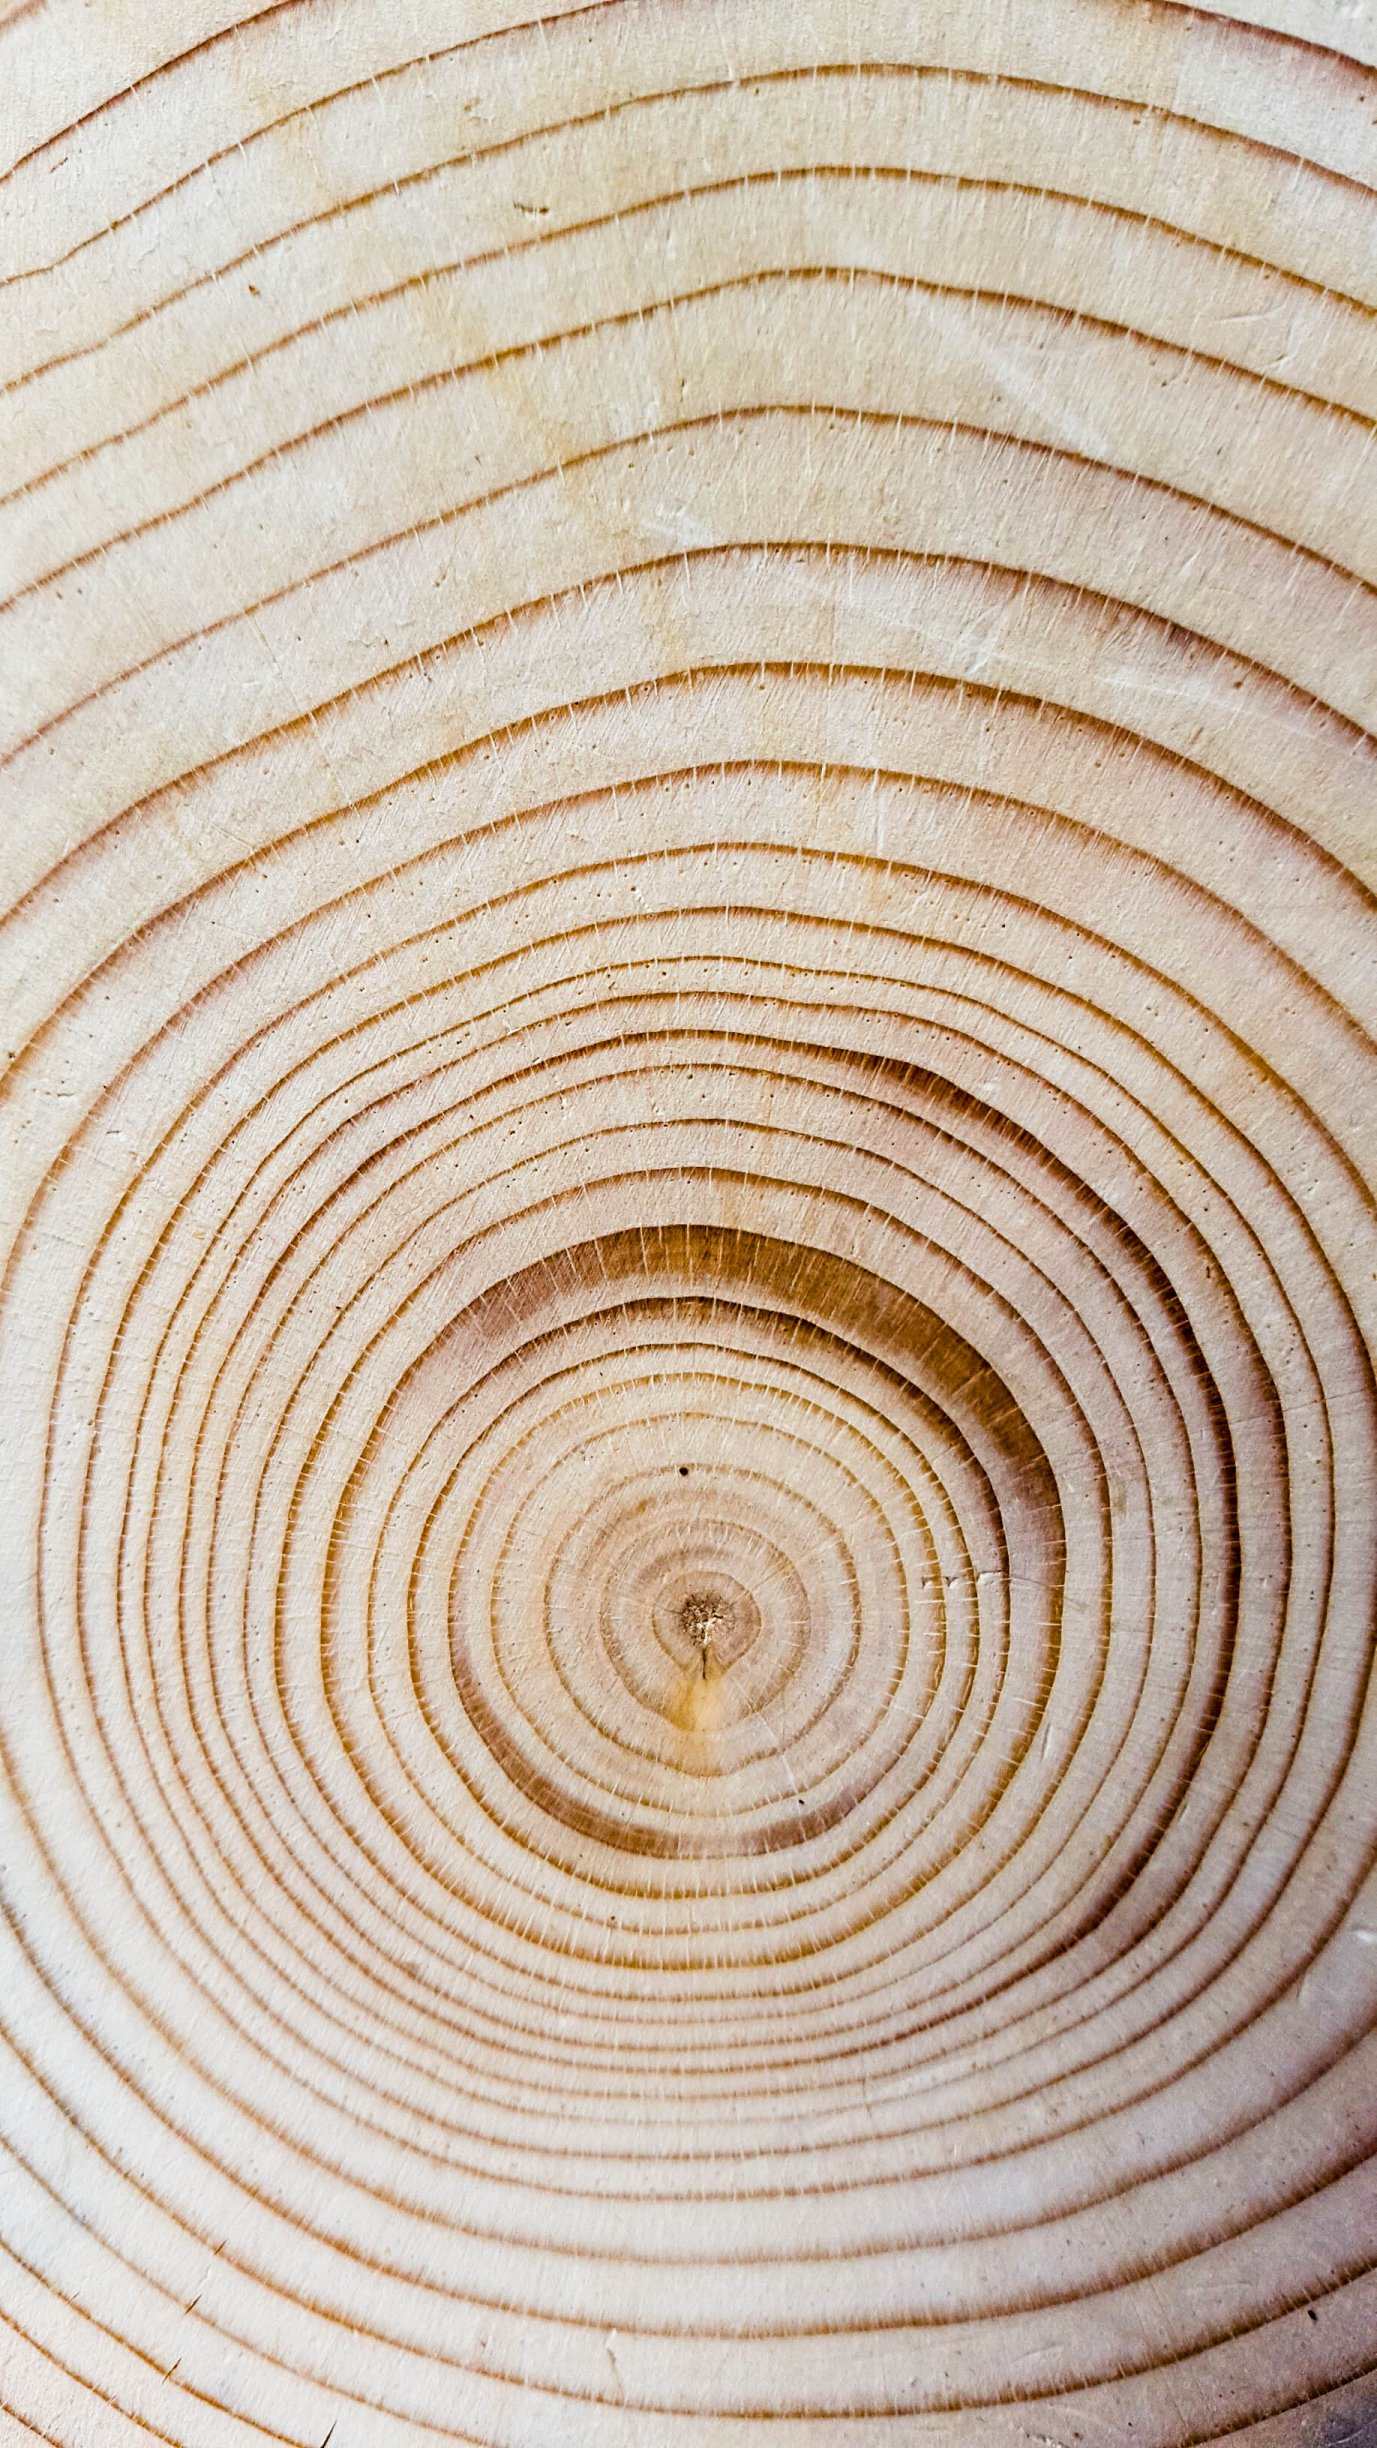 bryan tree wood rings forest texture photos log coinaphoto pattern derek outdoor nature by stock o photo